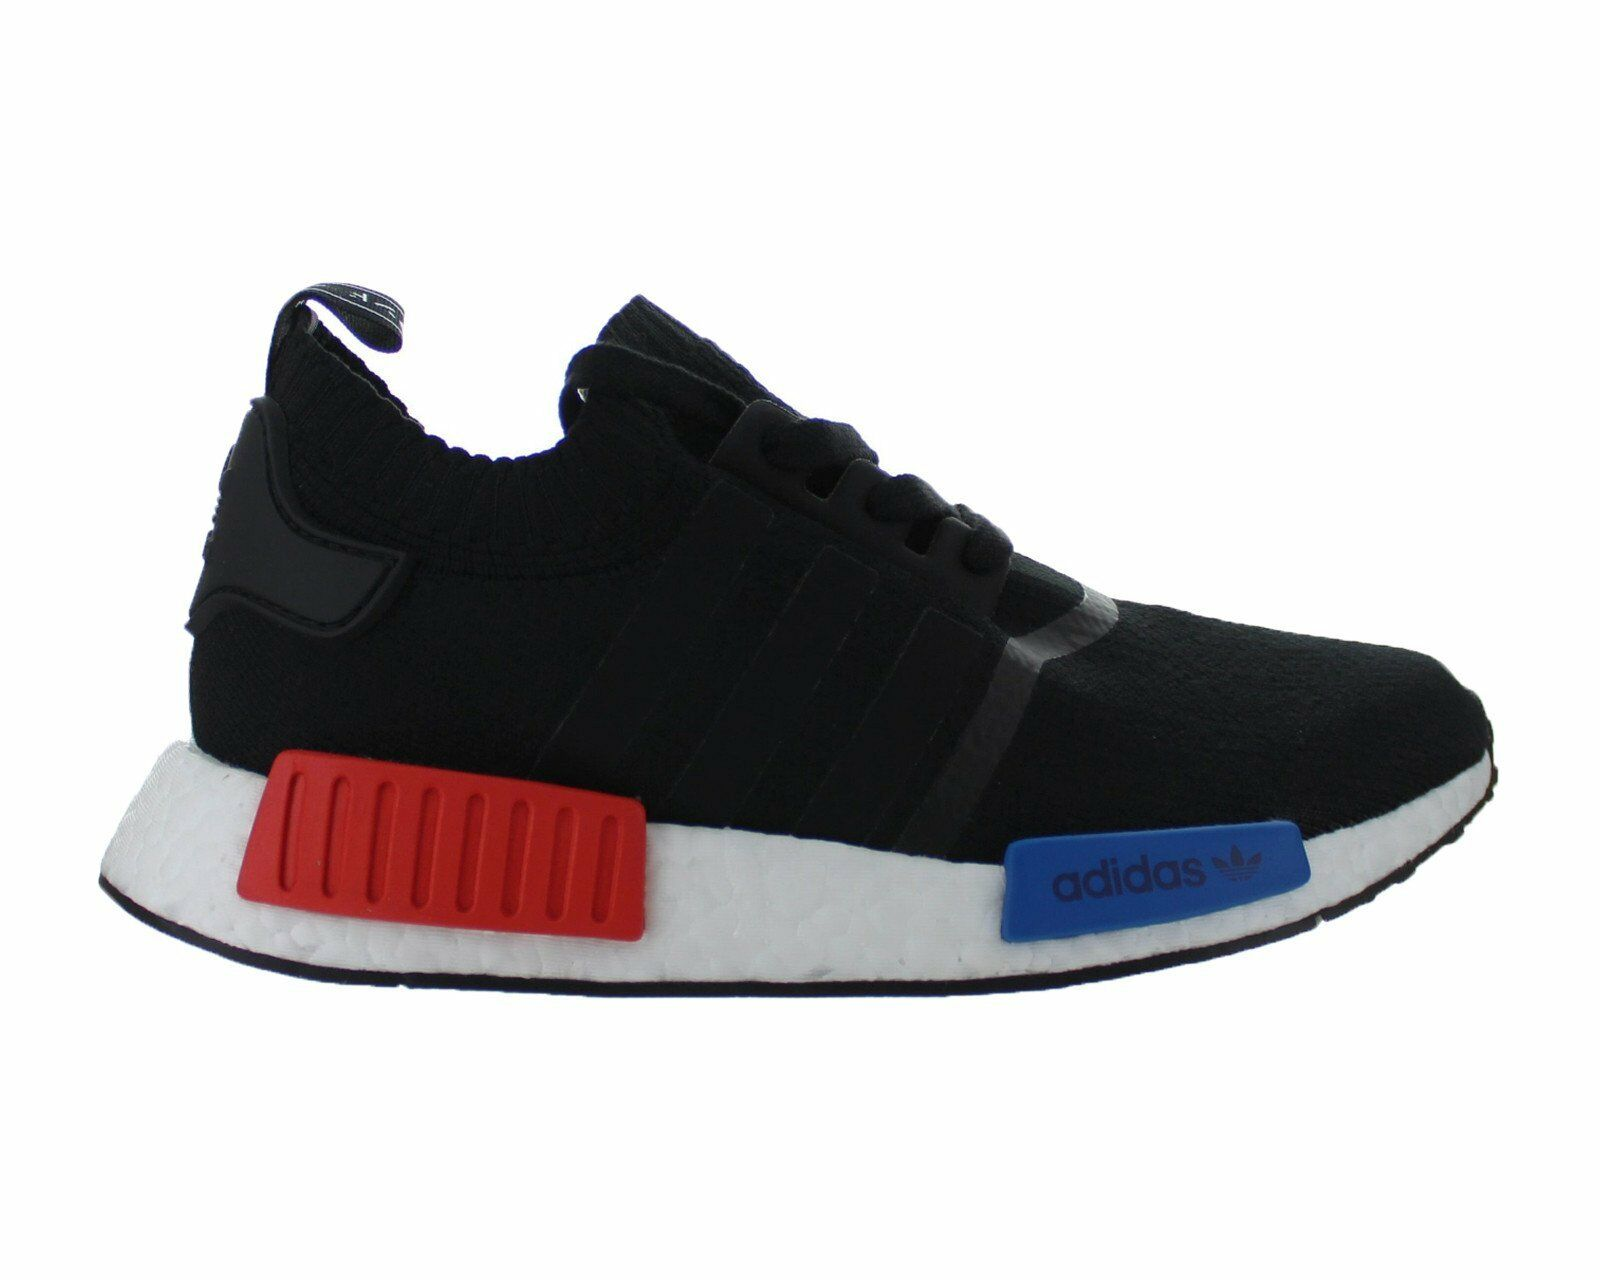 Mens Adidas NMD R1 Primeknit OG Core Black Lush Red bluee S79168